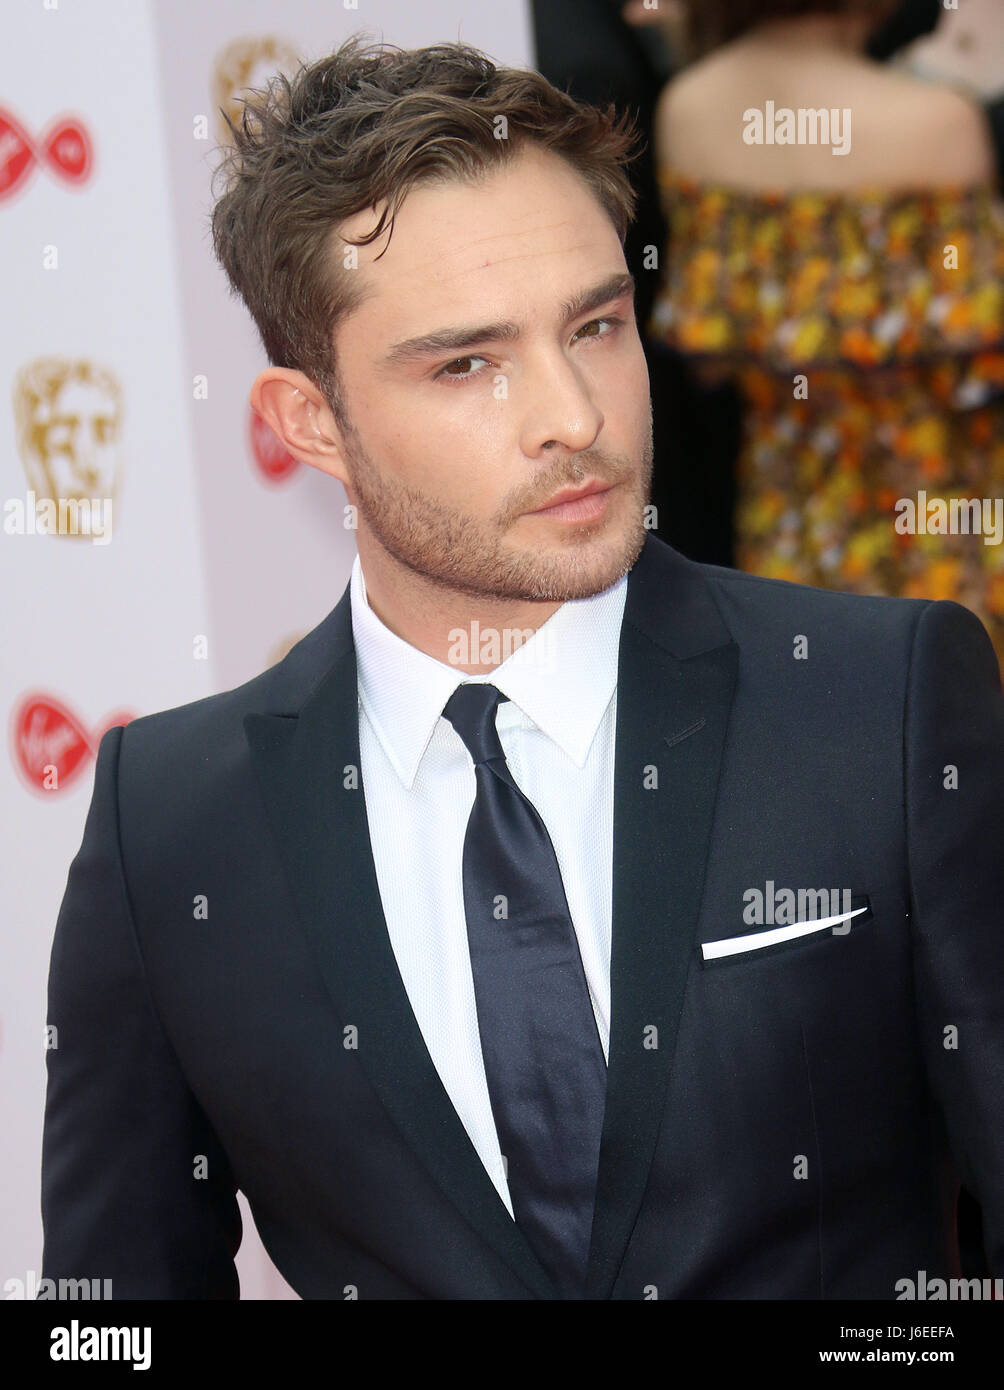 May 14, 2017 - Ed Westwick attending Virgin TV BAFTA Television Awards 2017 at The Royal Festival Hall in London, - Stock Image